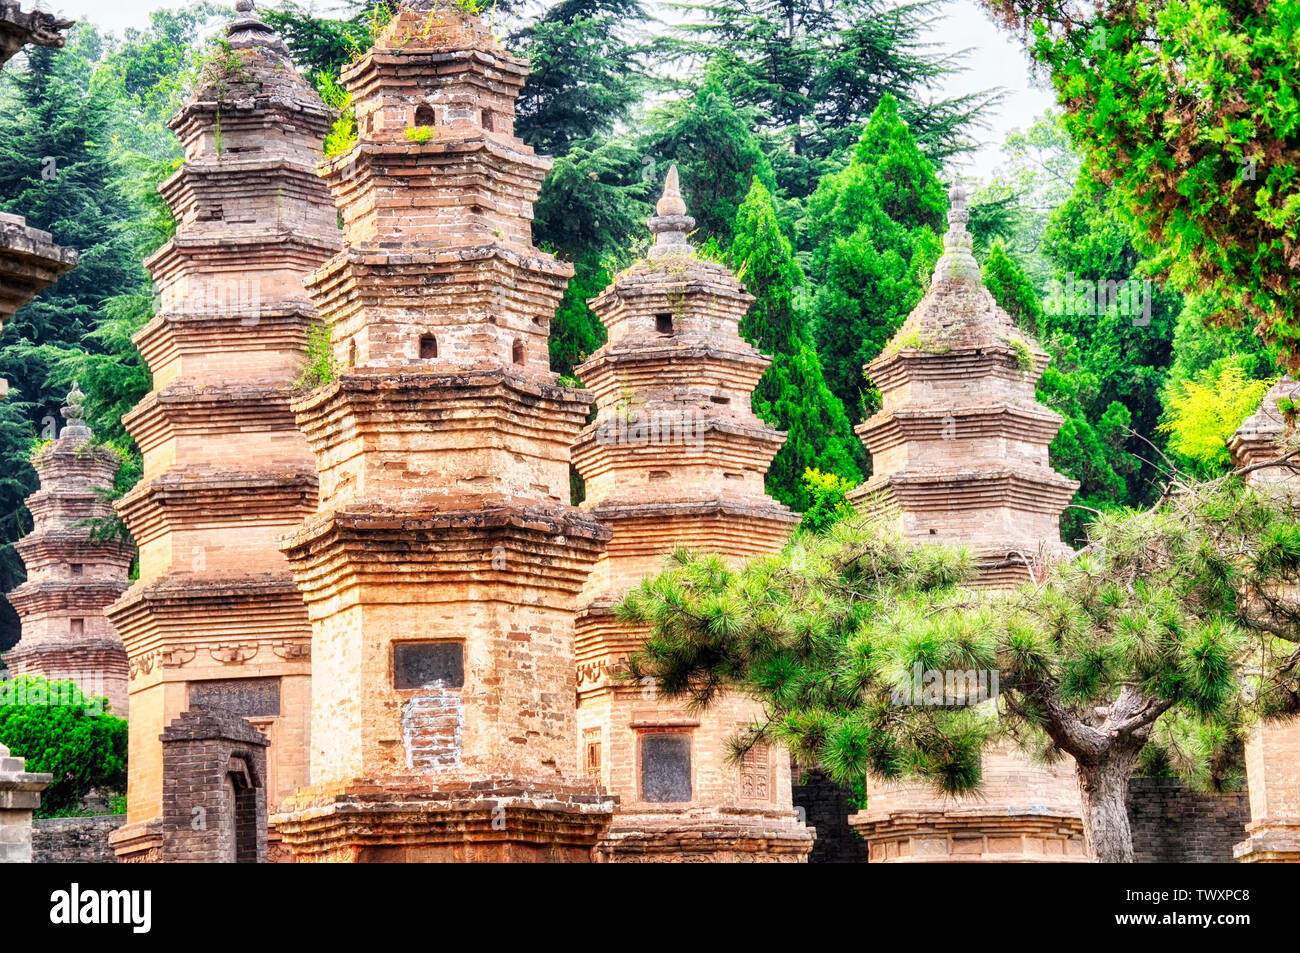 The ancient talin buddhist pagoda forest near the Shaolin Temple in Dengfeng city in Henan Province China. - Stock Image